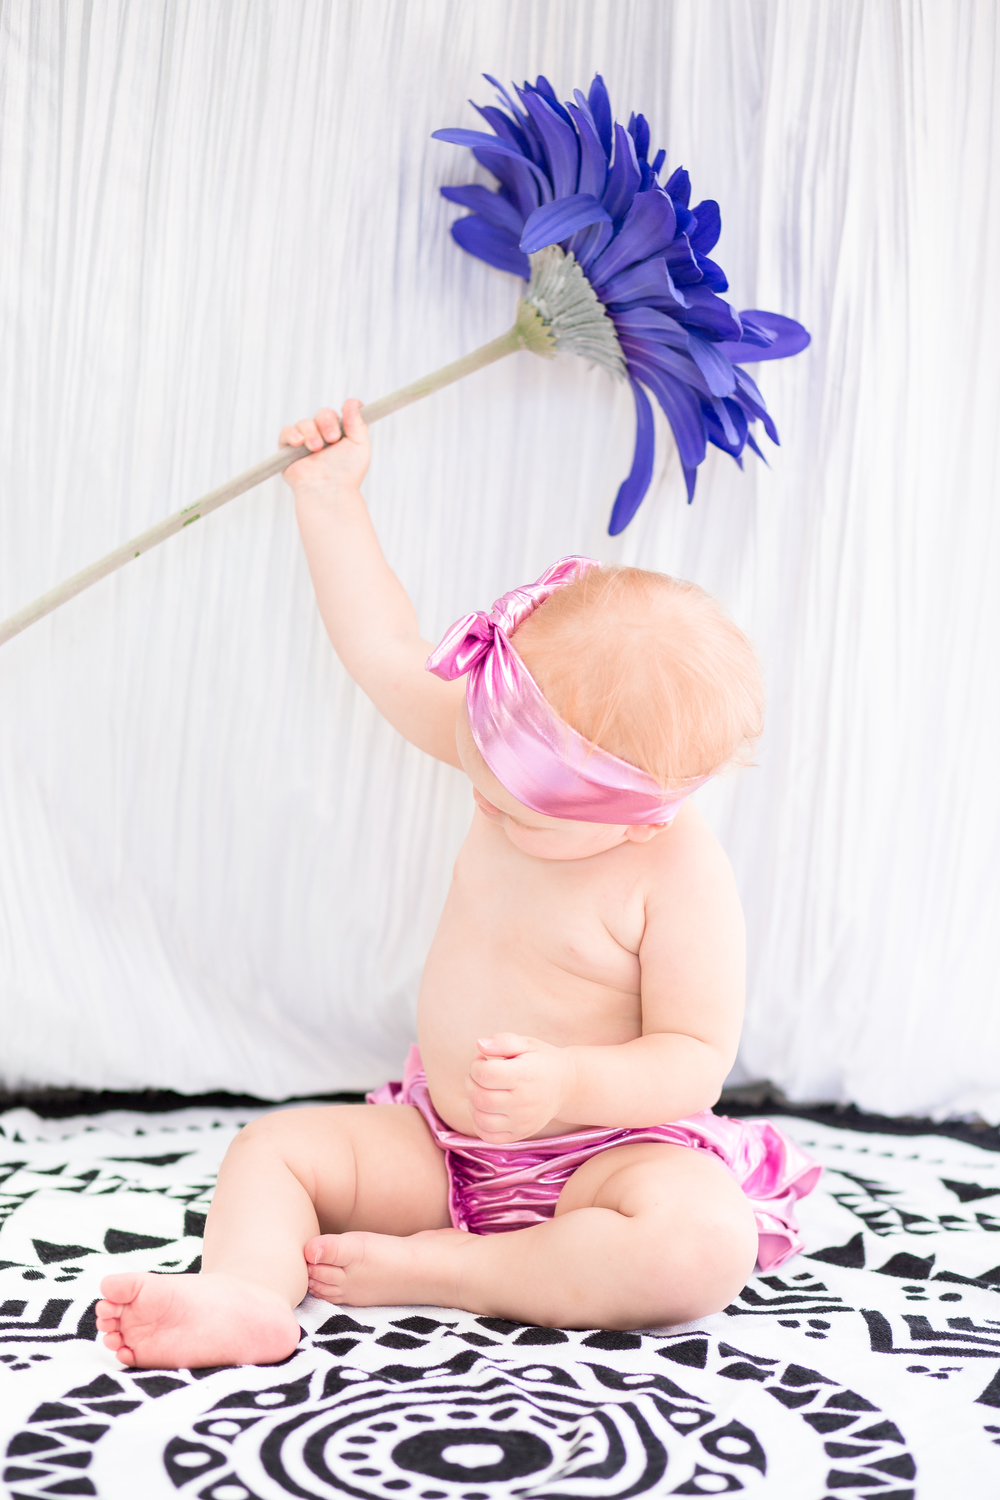 Lacey_Michelle_Photography_final-7090.jpg